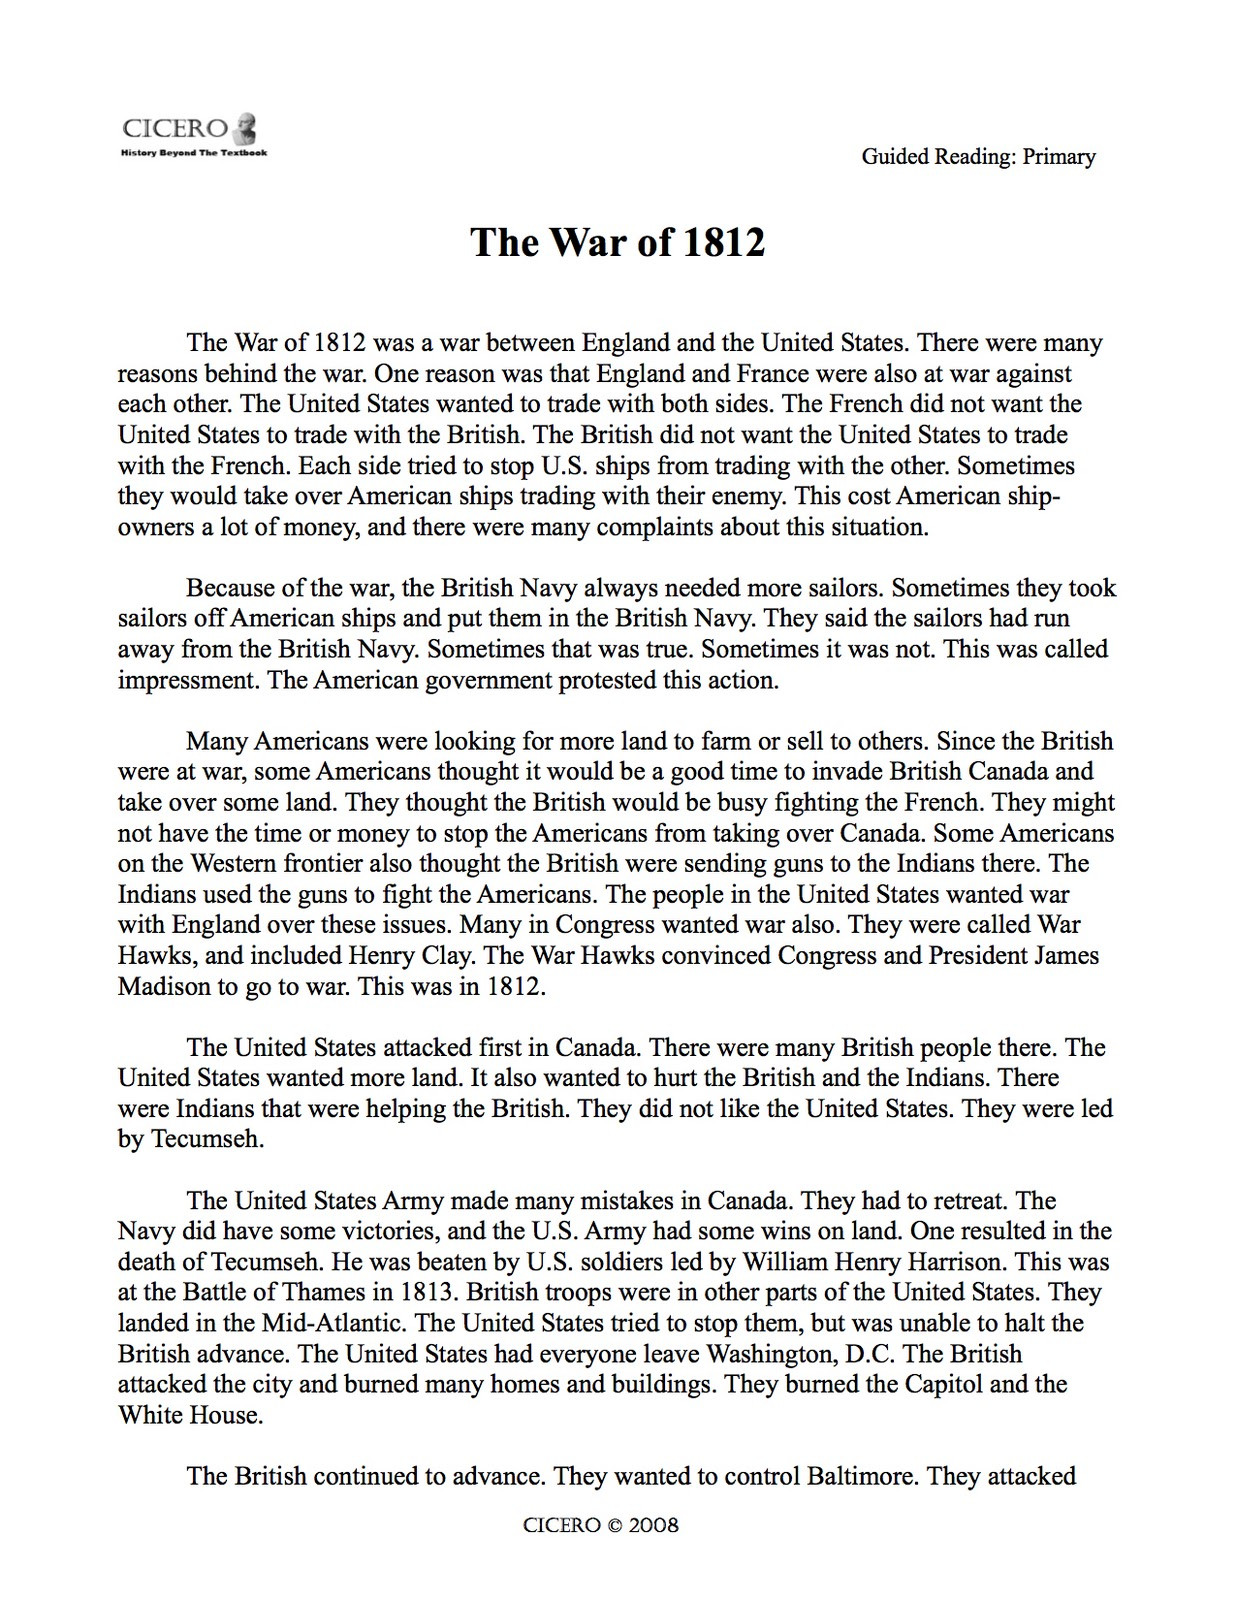 essay on war of 1812 causes Causes of the war of 1812 the war of 1812 was fought between the united states and great britain from june 1812 to the spring of 1815 (findling, 15) when the war began, it was being fought by the americans to address their grievances toward the british, though toward the end, the issues eventually.